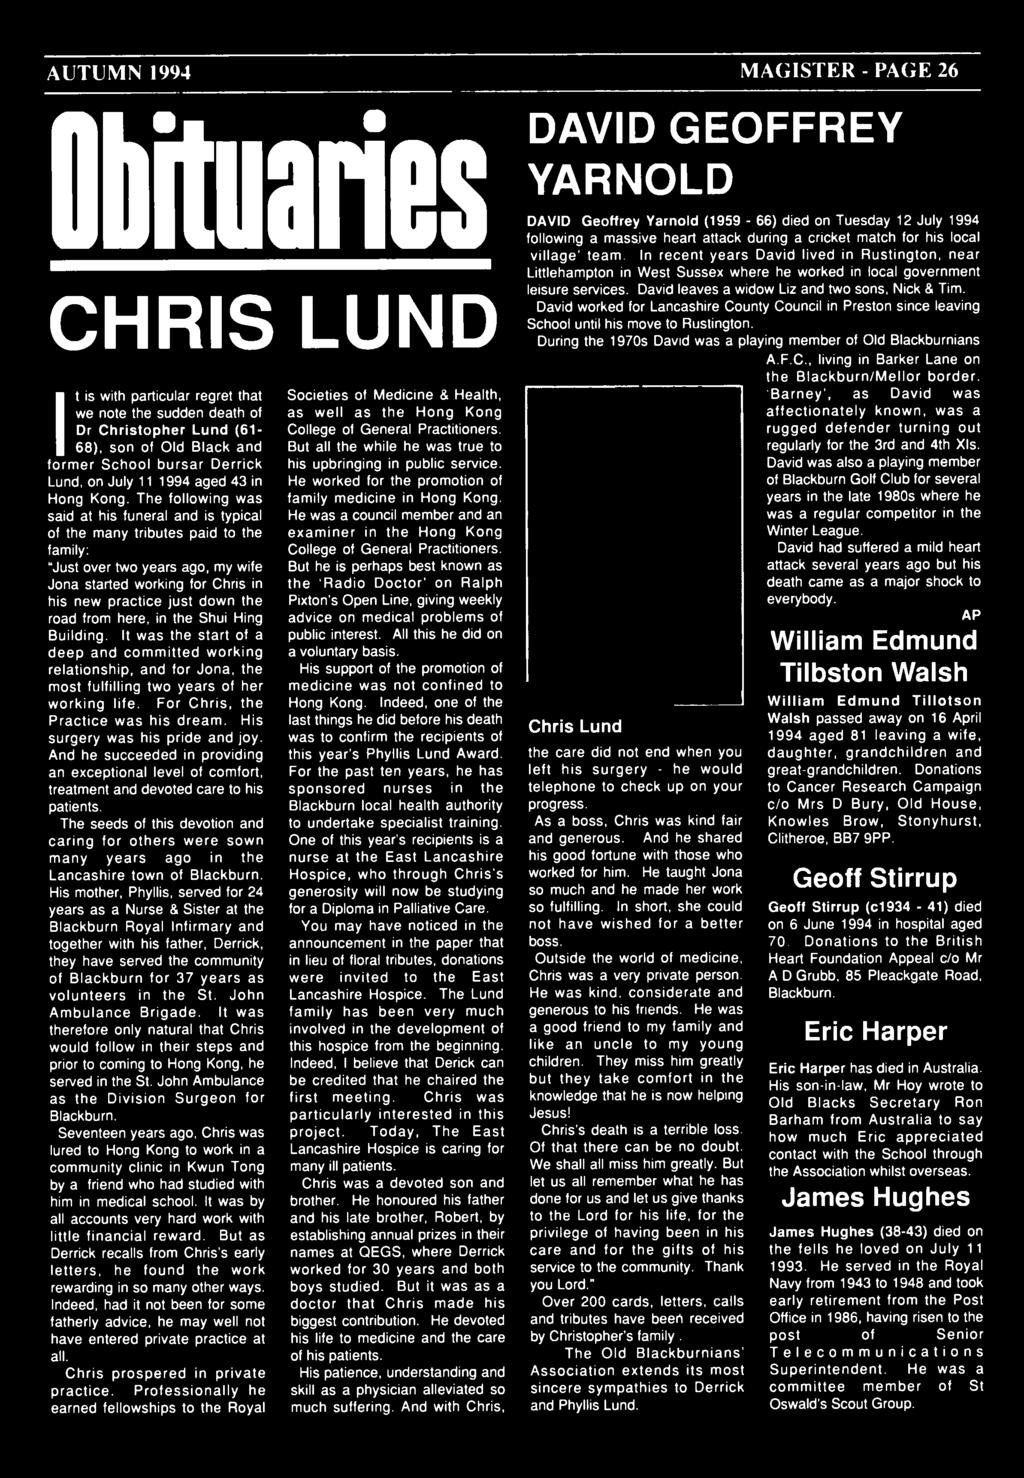 CHRIS LUND David worked for Lancashire County Council in Preston since leaving School until his move to Rustington. During the 1970s David was a playing member of Old Blackburnians A.F.C., living in Barker Lane on the B la ckbu rn /M ello r border.